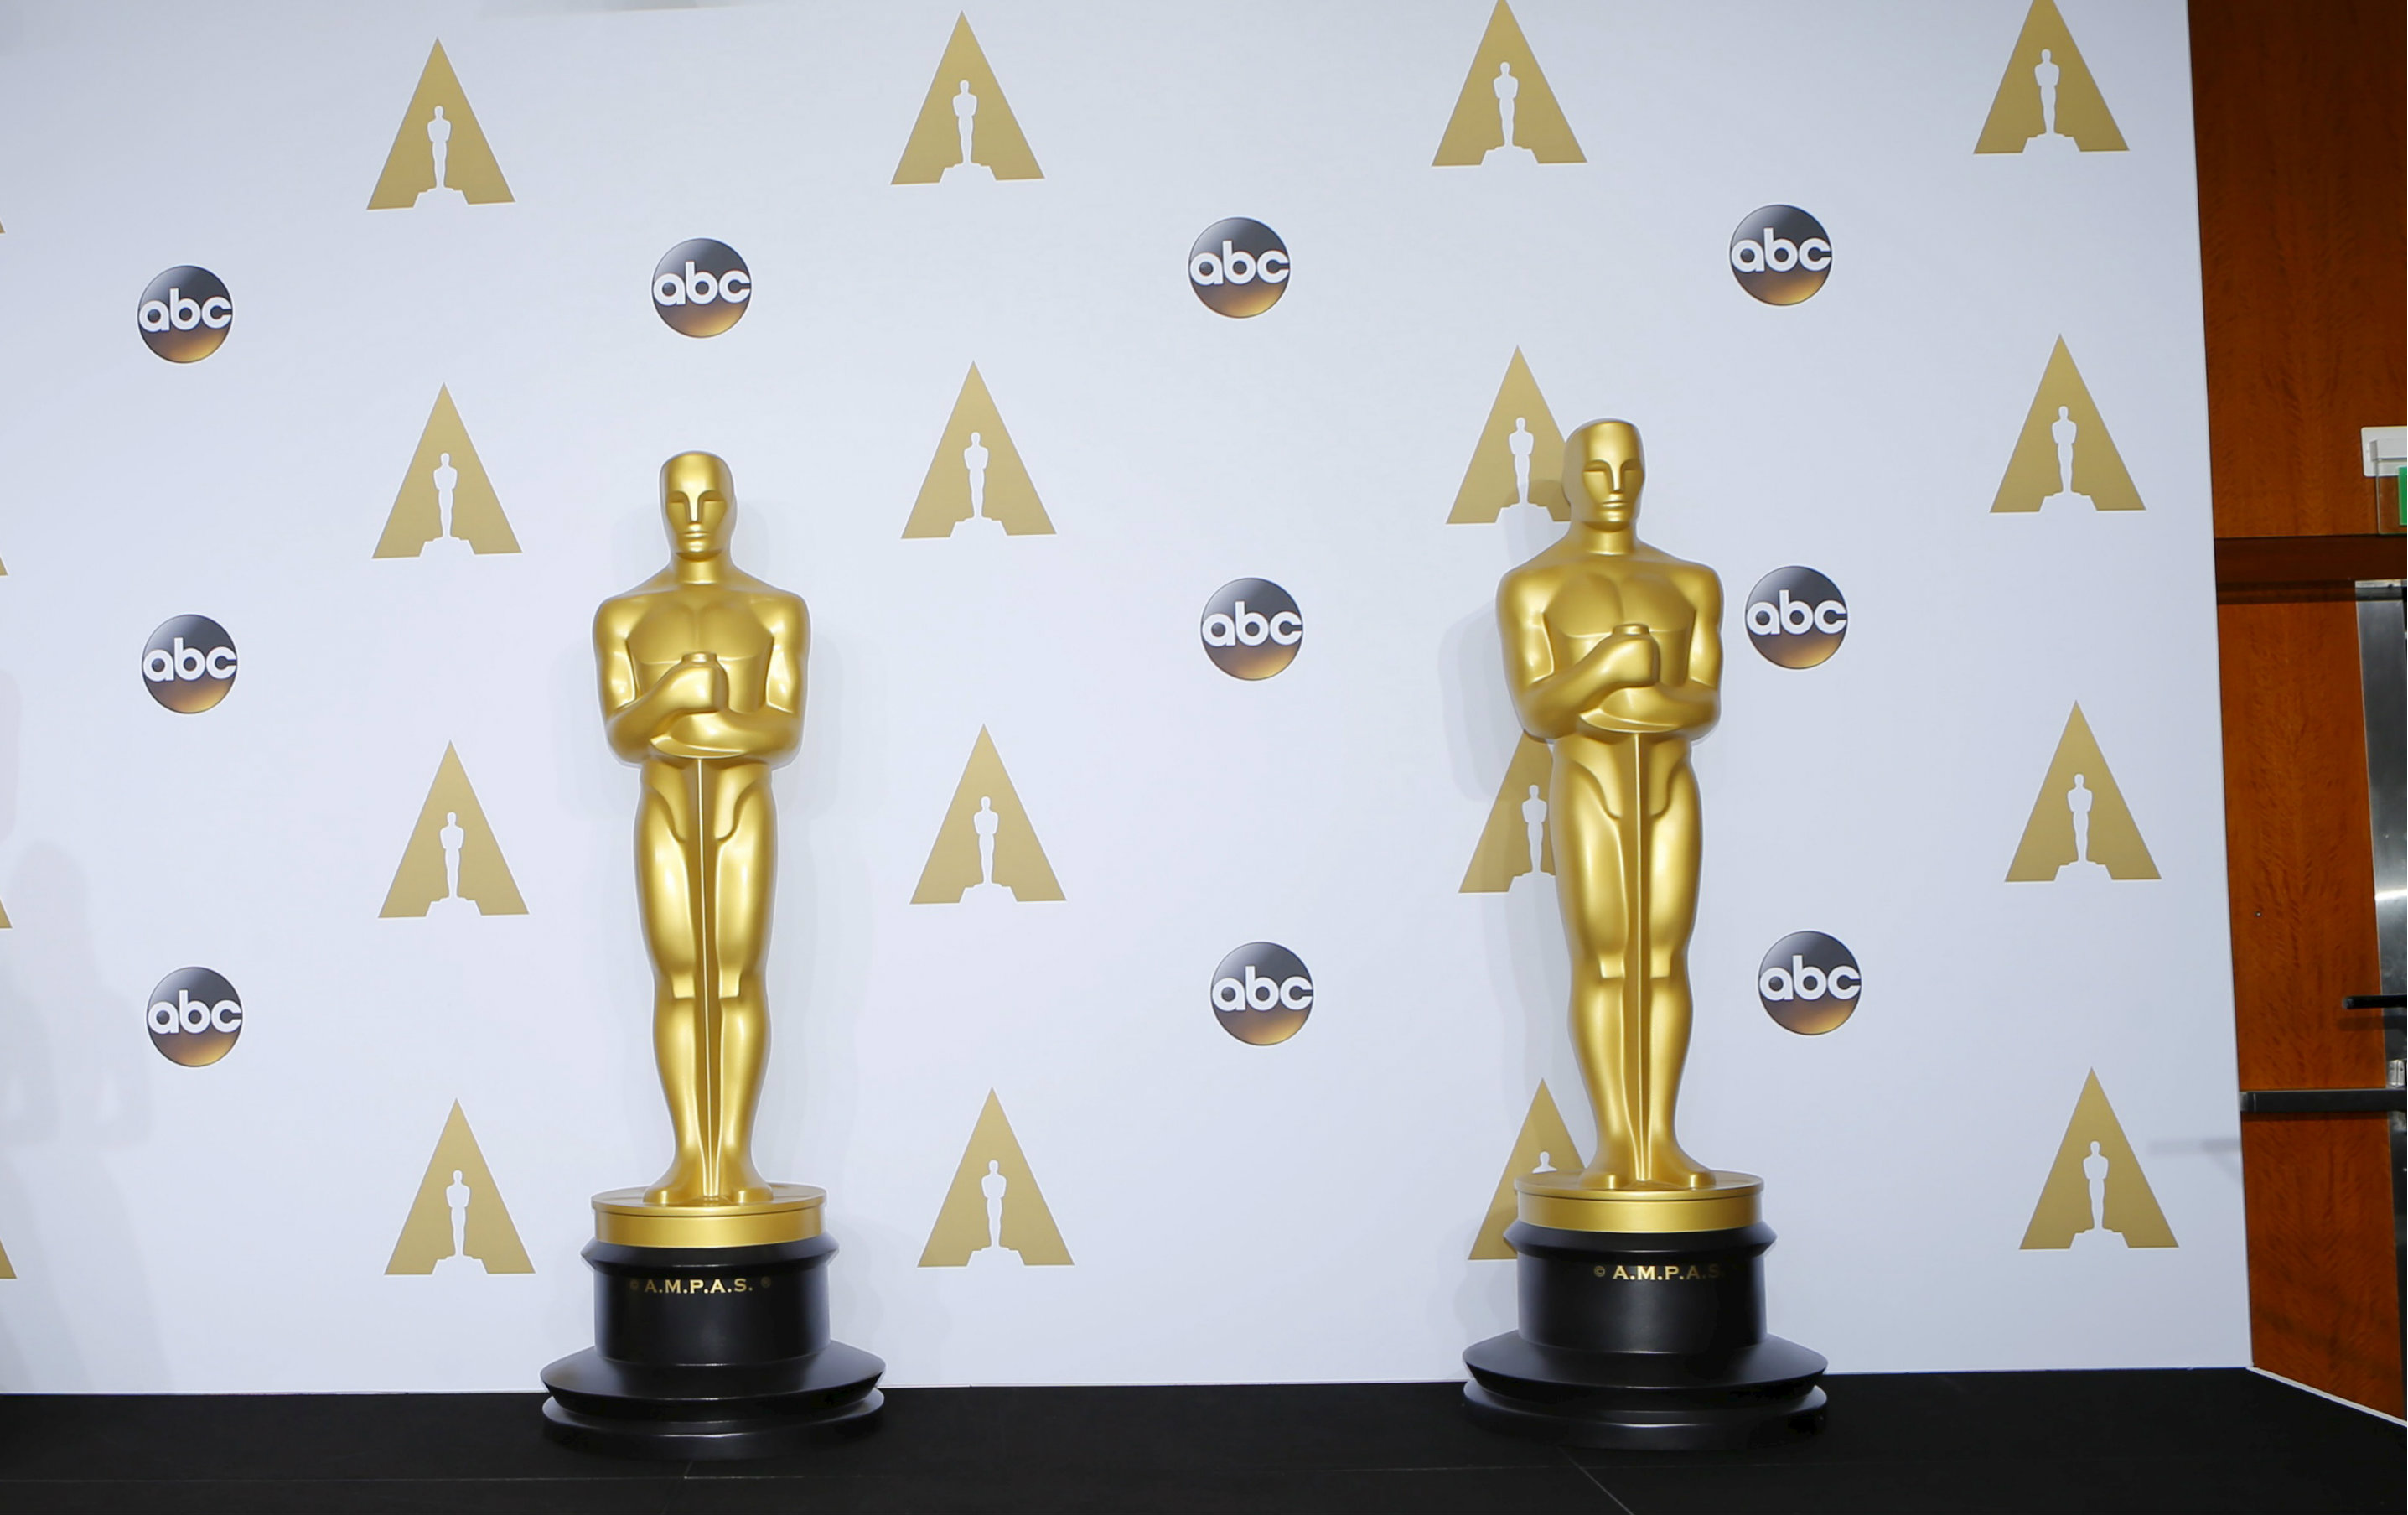 How should we feel about the Oscar winner who thanked his wife for giving up her career?